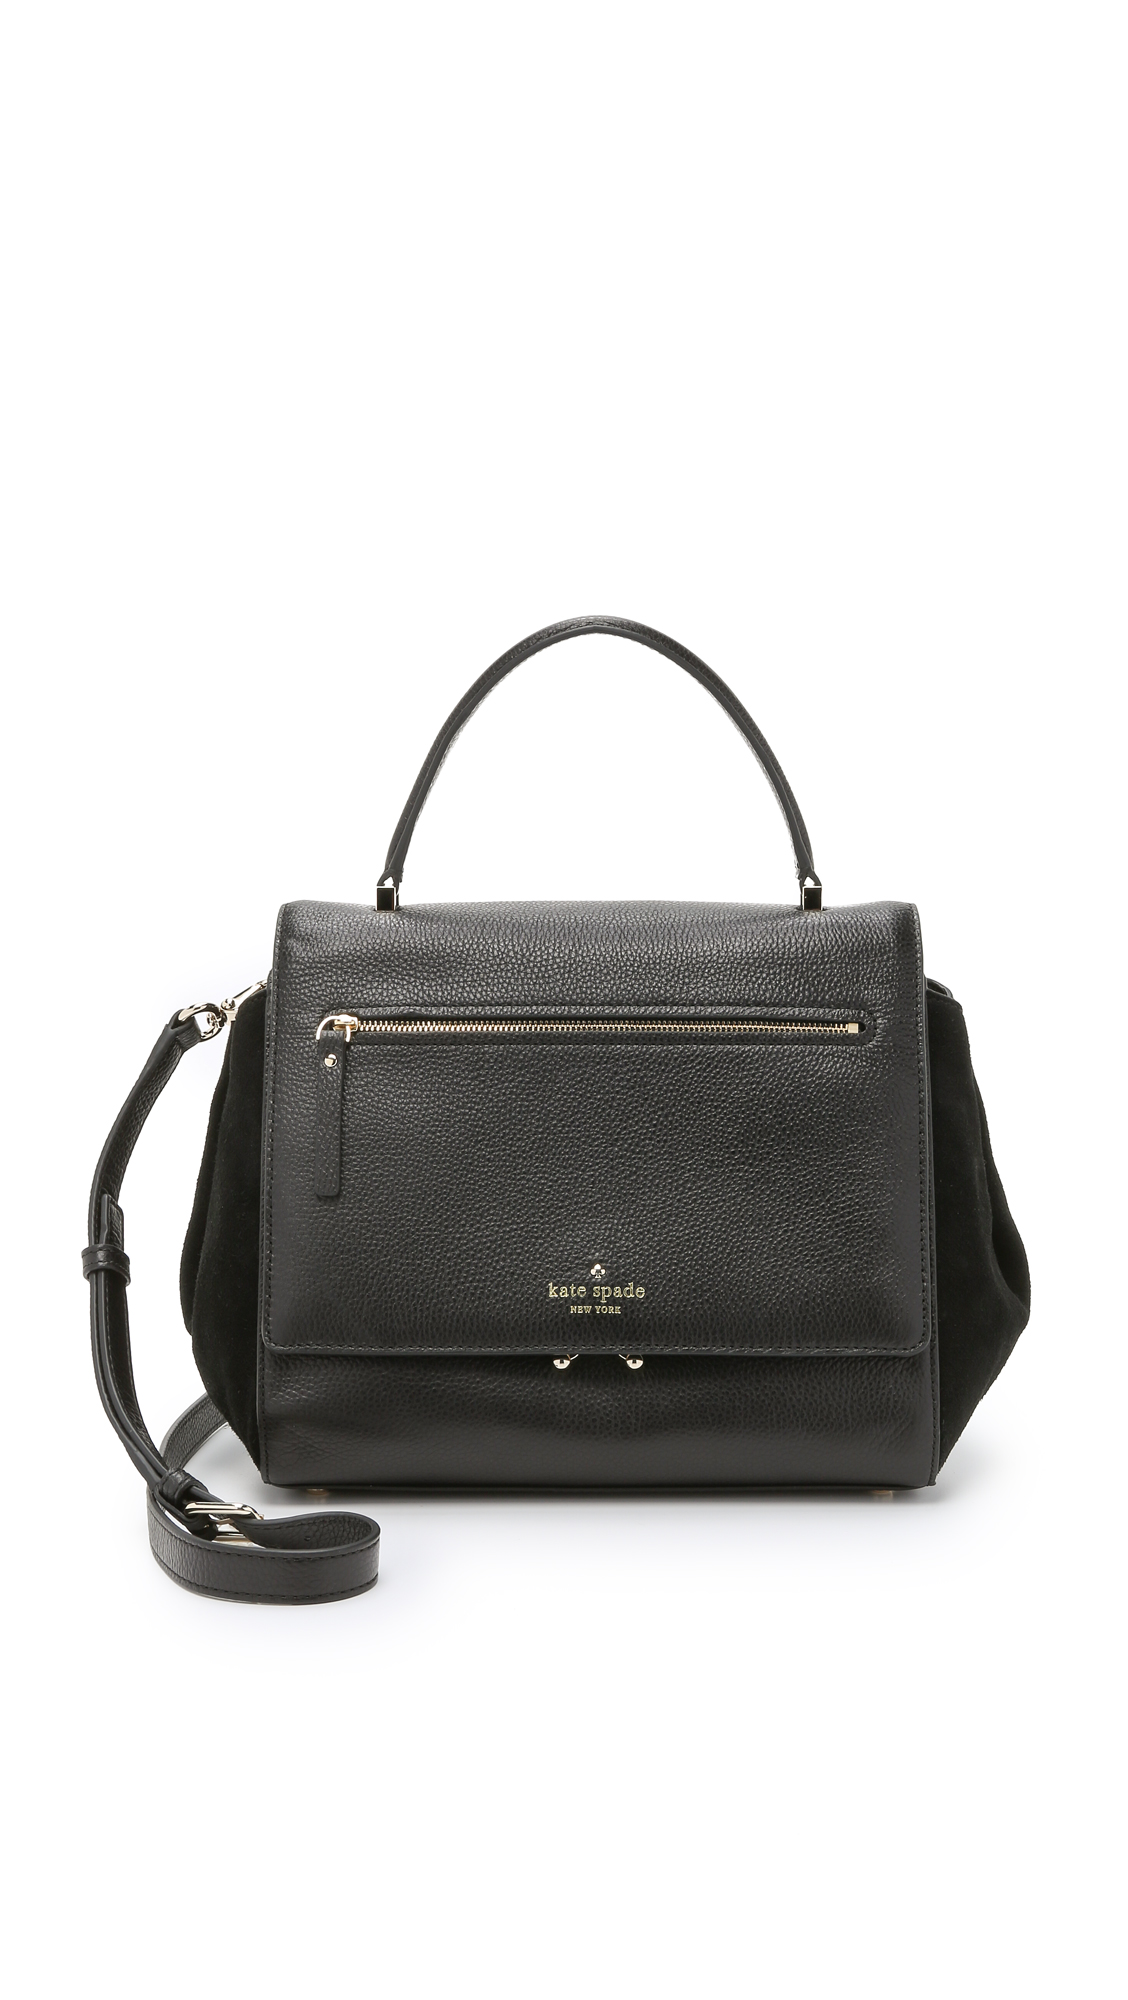 Kate Spade New York Anderson Satchel